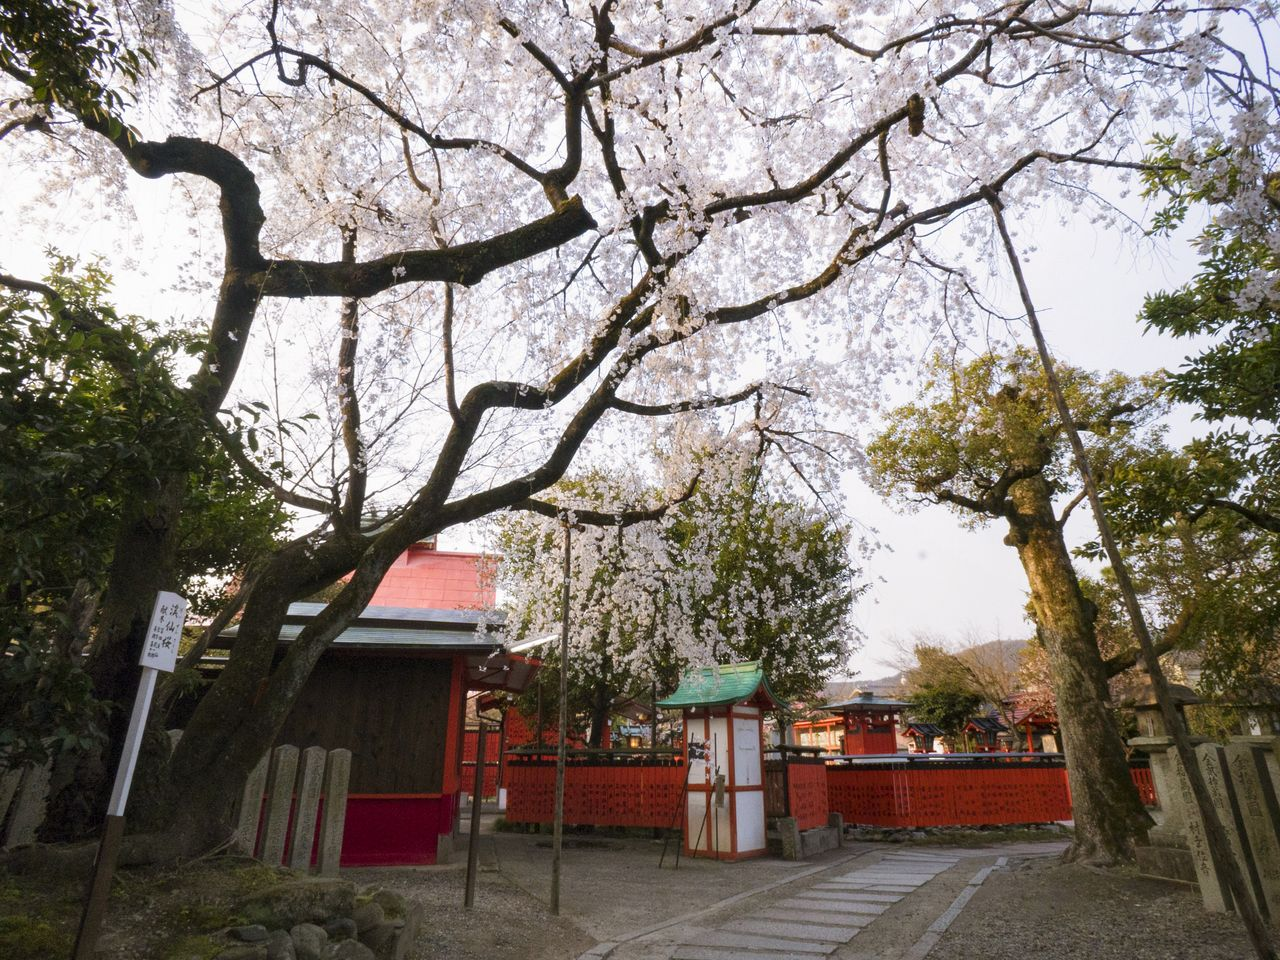 East along the shrine path from the chūmon (inner gate) brings visitors to where the elegant Keisen-zakura stands. It is said that Keisen was a close friend of Tomioka Tessai—one of the grand masters of Japanese-style picture painting, who also served as chief priest of Kurumazaki Shrine.